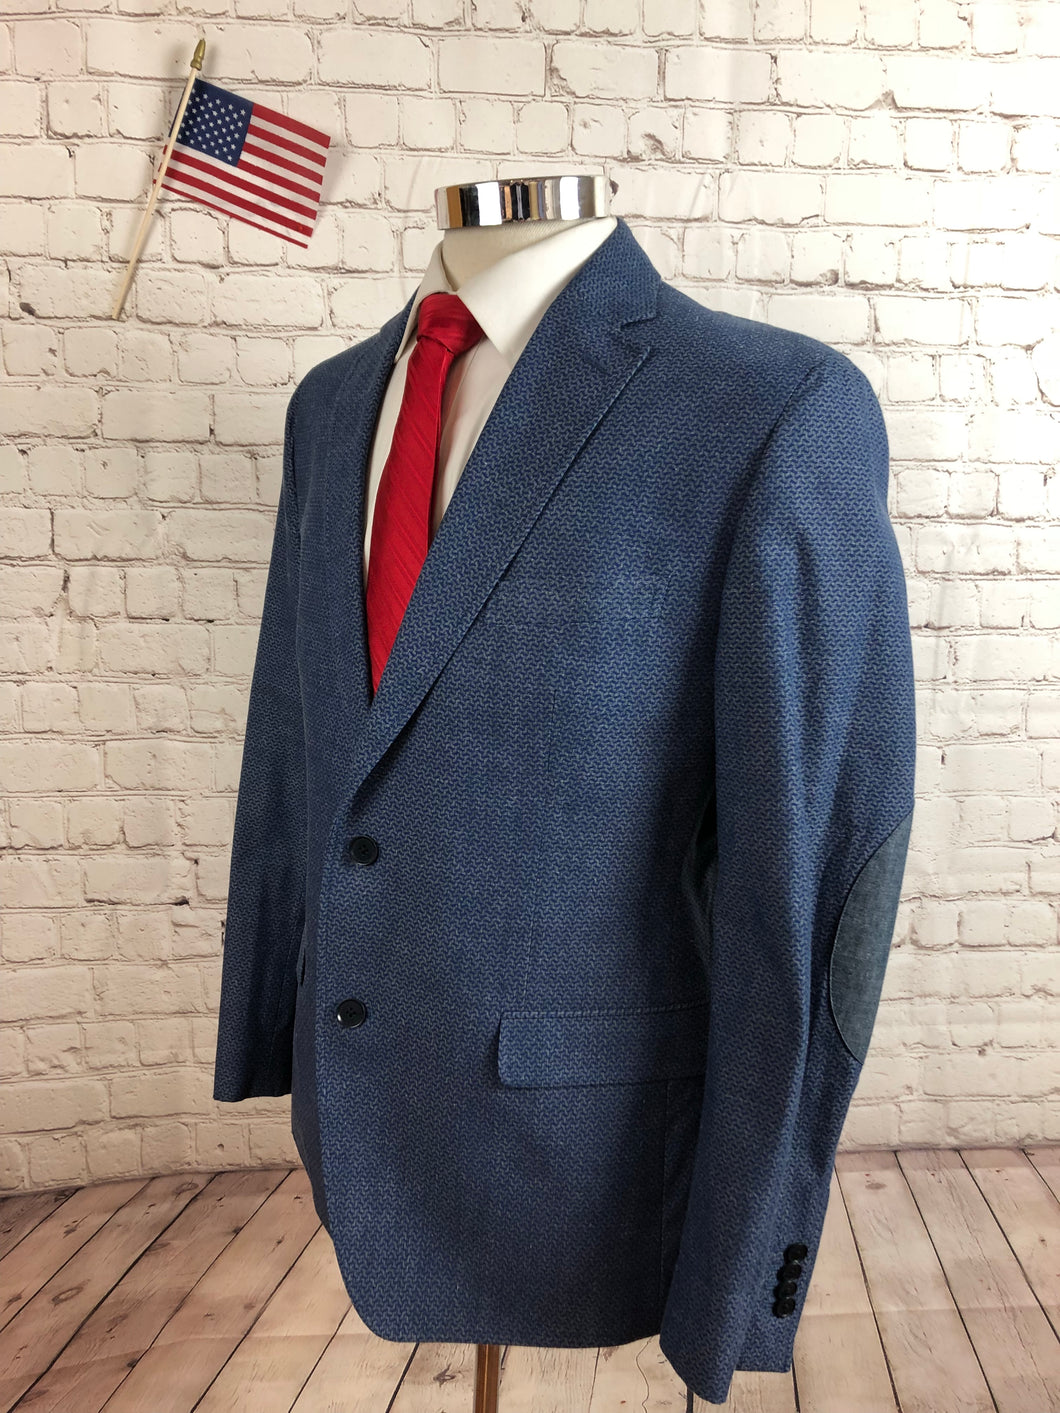 Banana Republic Men's Blue Geometric COTTON Blazer Sport Coat Suit Jacket 40S $395 - SUIT CHARITY OUTLET